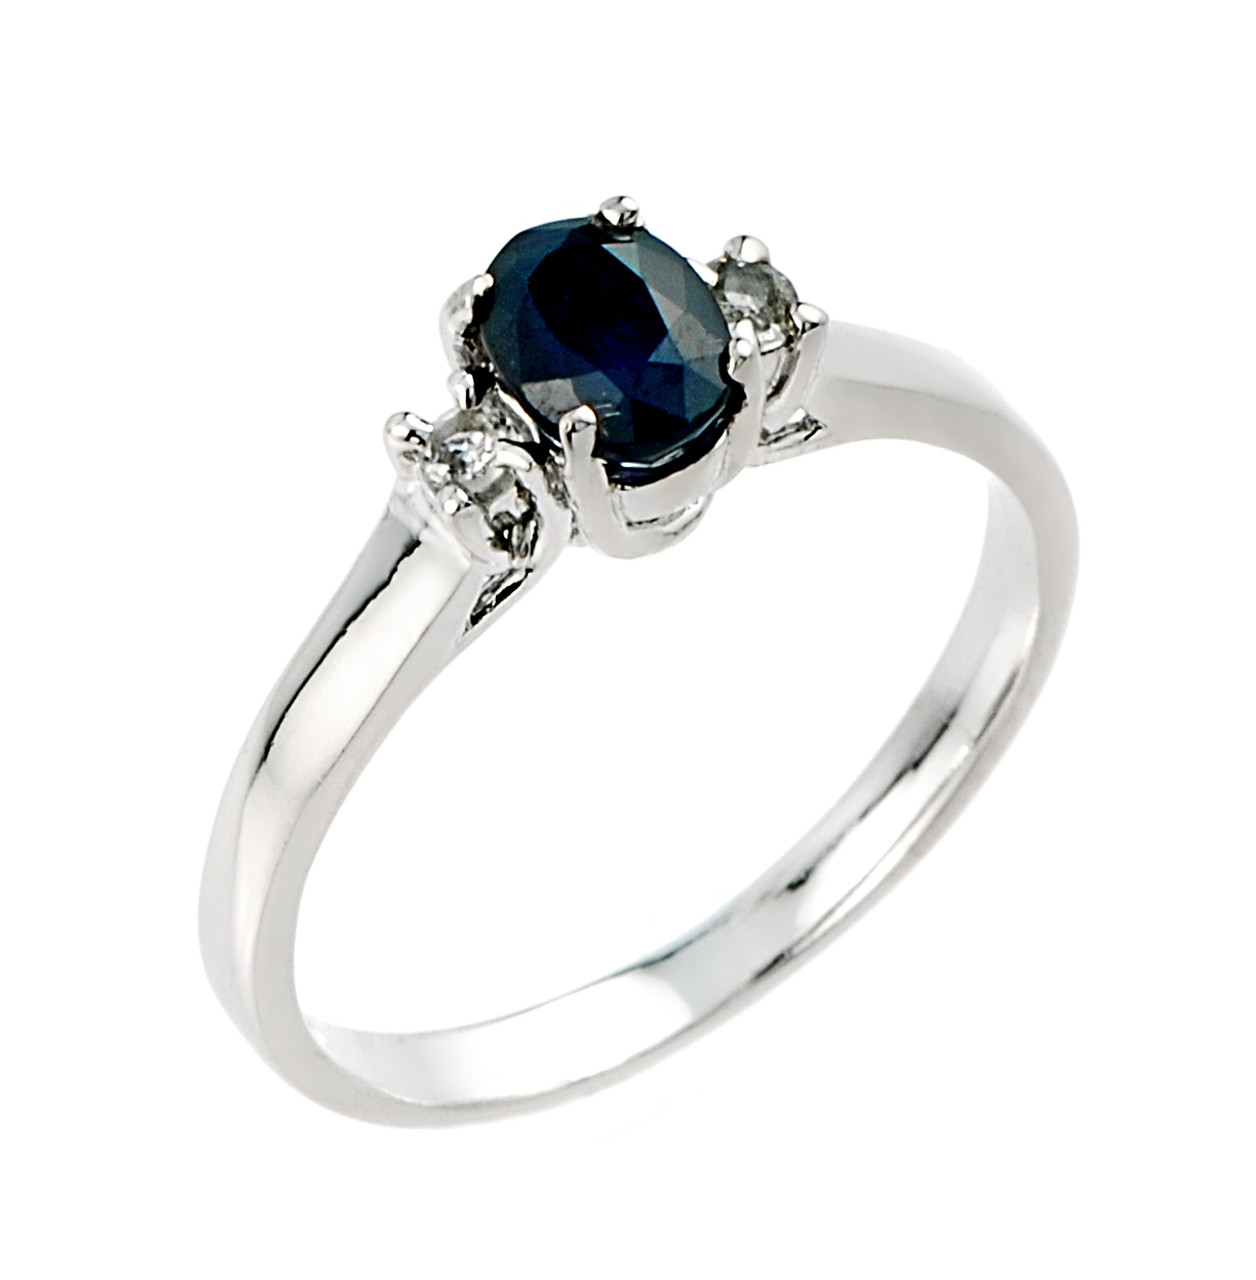 Sapphire and White Topaz Sterling Silver Engagement Ring #44